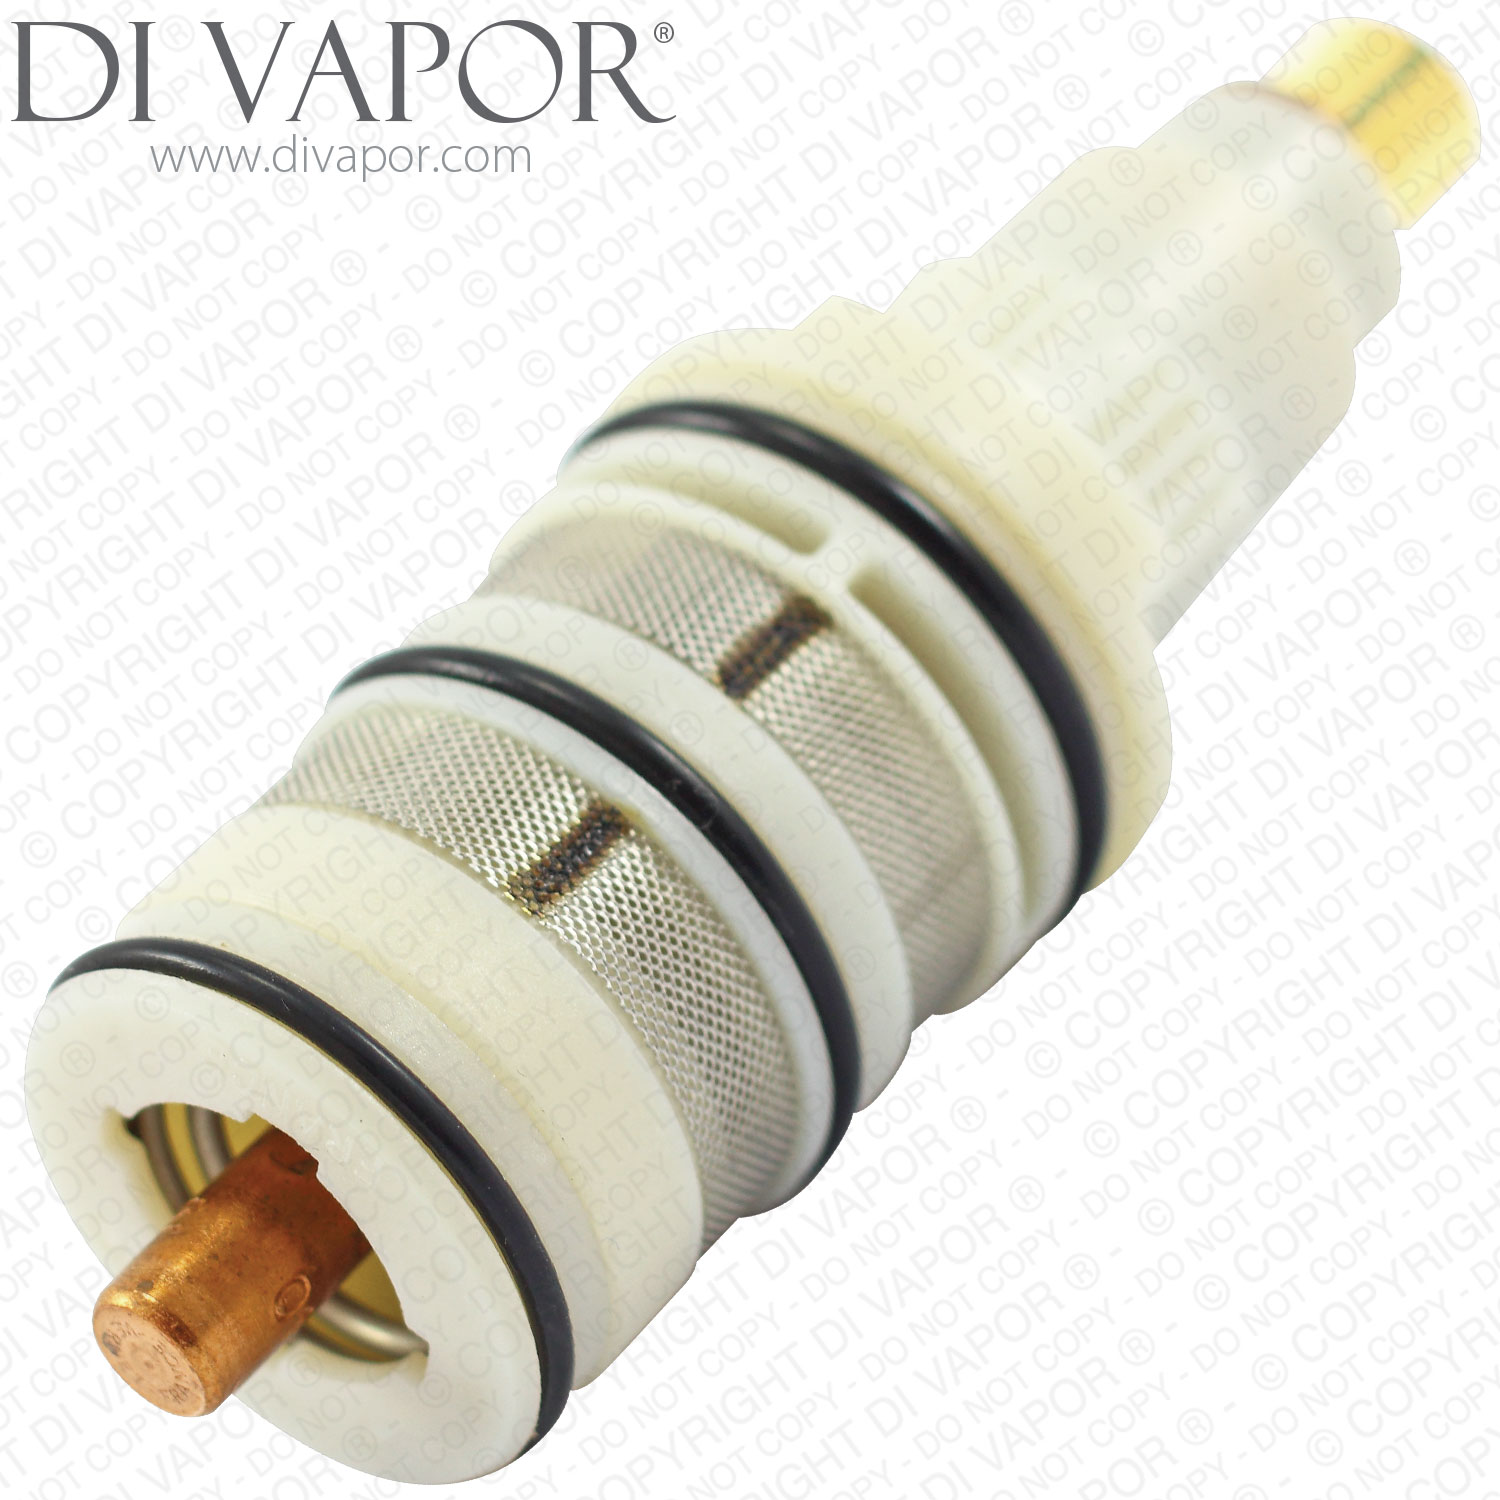 Thermostatic Cartridge for Concinnity  Barand 10502 34 Inch Shower Valve  eBay